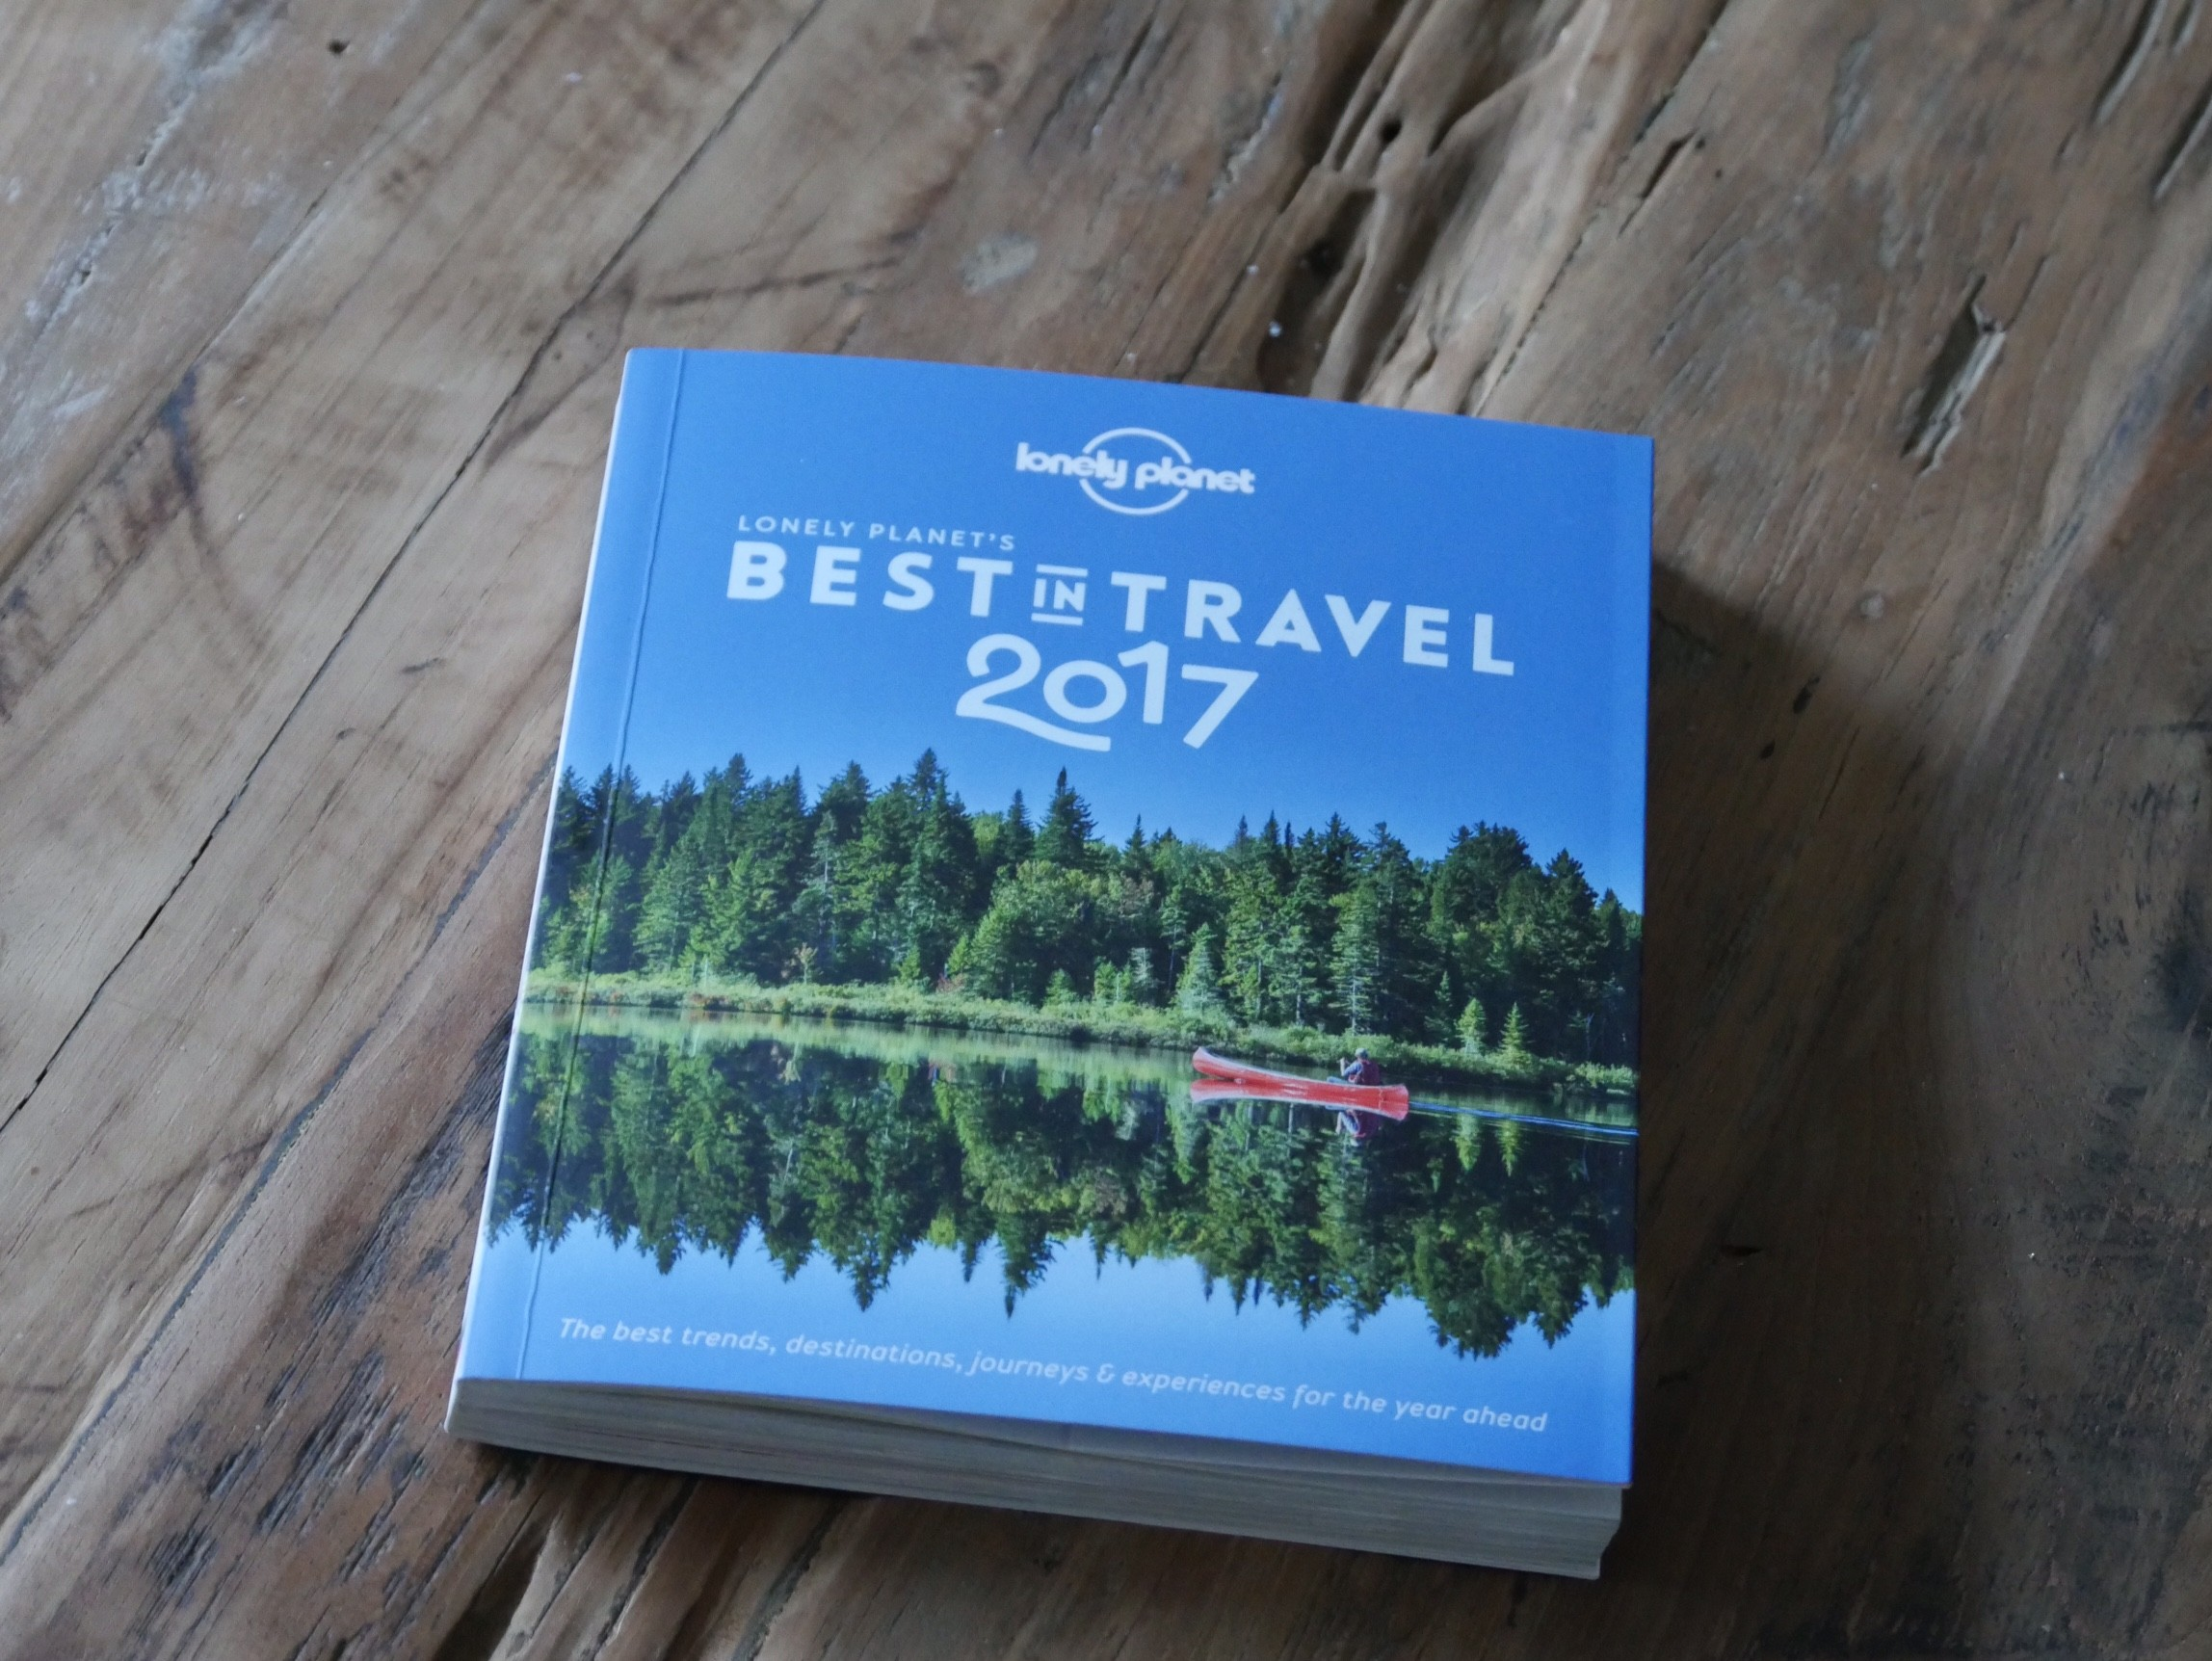 Boekentip: Best in Travel 2017